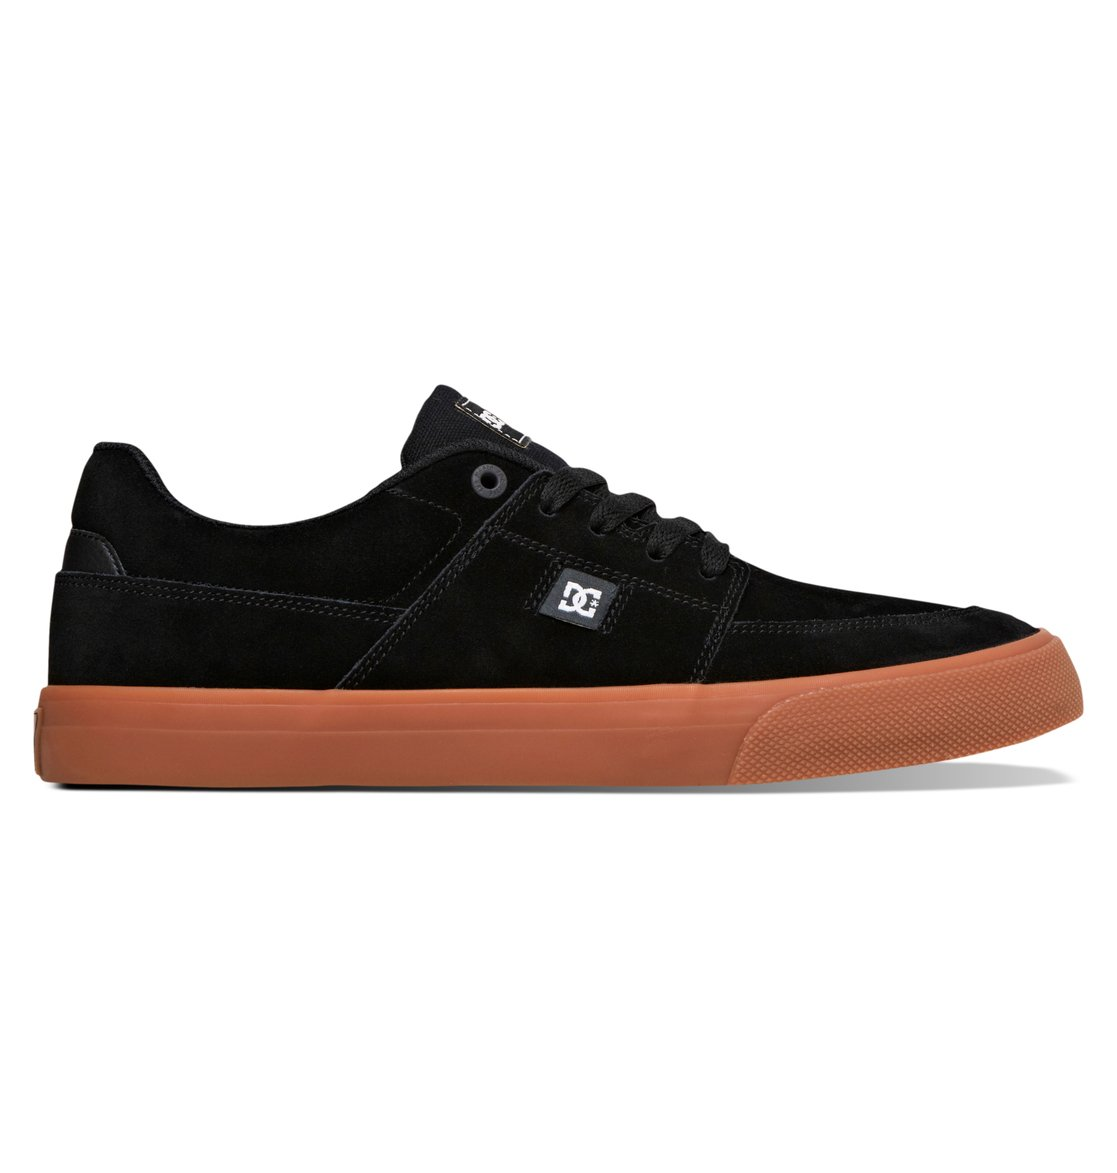 DC Shoes Wes Kremer 2 S - Low Top Skate Shoes - Homme KFVDLMbD